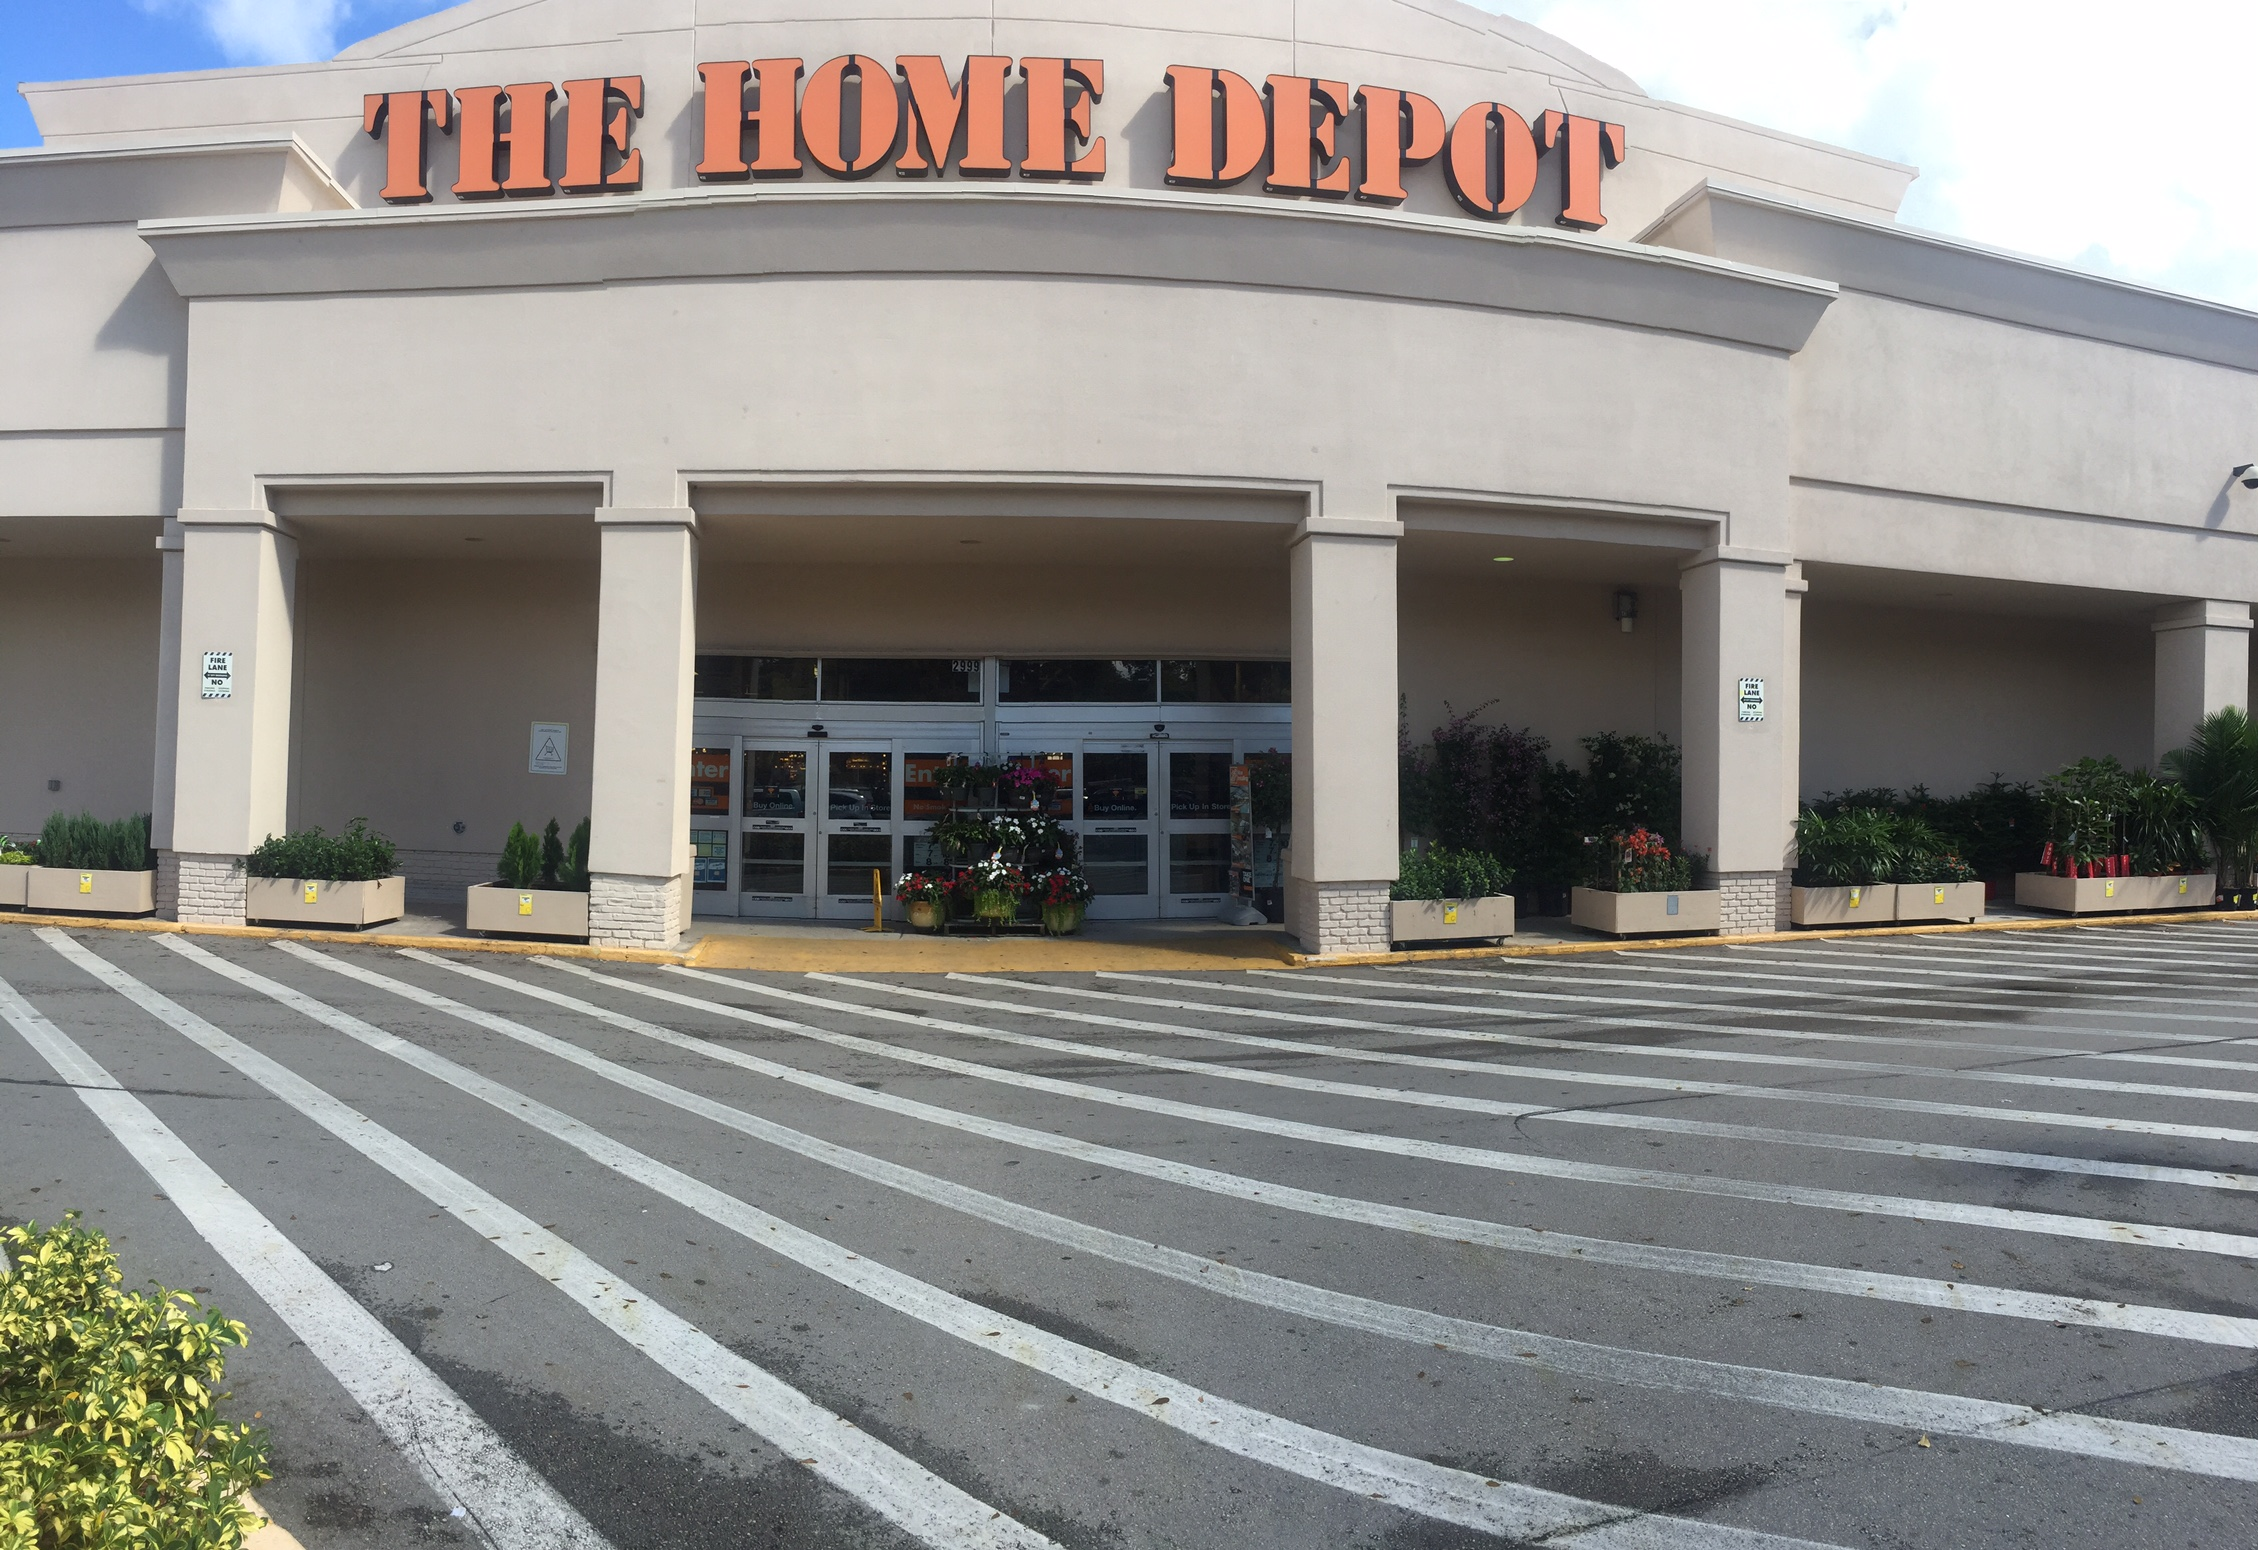 The home depot in miami fl whitepages Home depot patio furniture miami